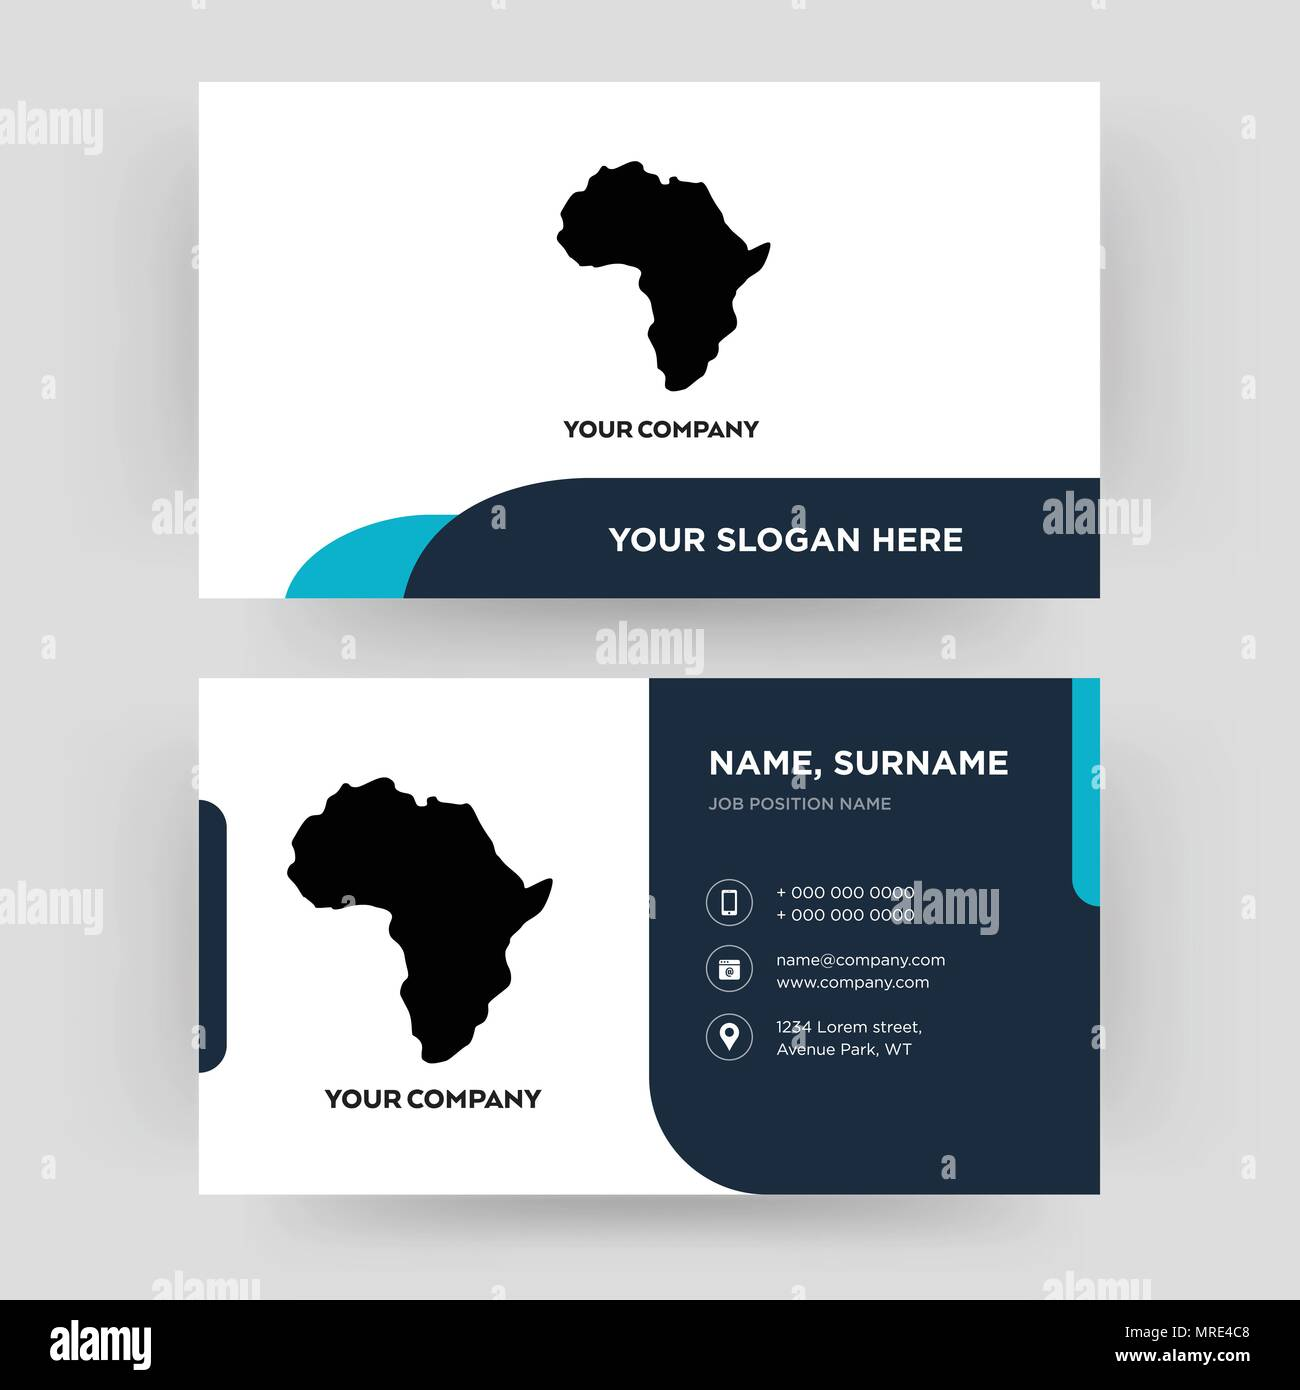 African continent business card design template visiting for your african continent business card design template visiting for your company modern creative and clean identity card vector colourmoves